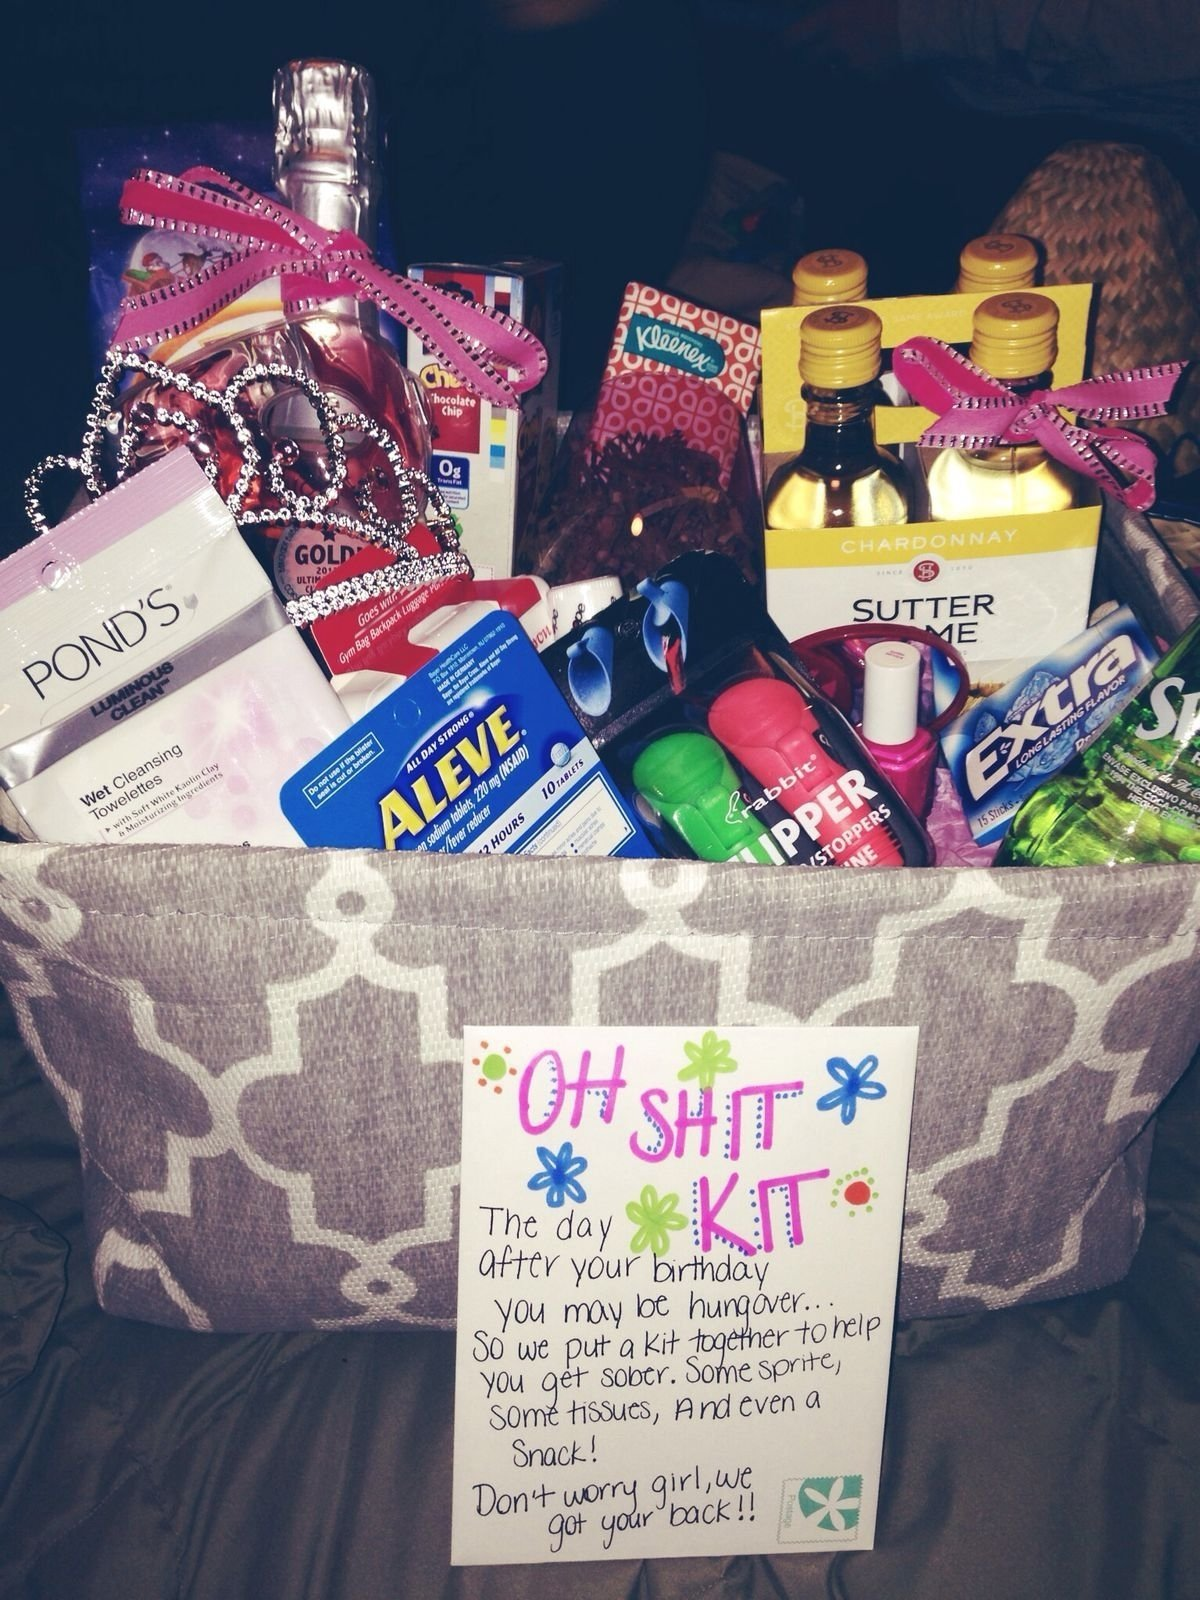 10 Famous Cute Gift Ideas For Best Friend oh shit kit cute idea only 2 more years till k can legally drink 2020